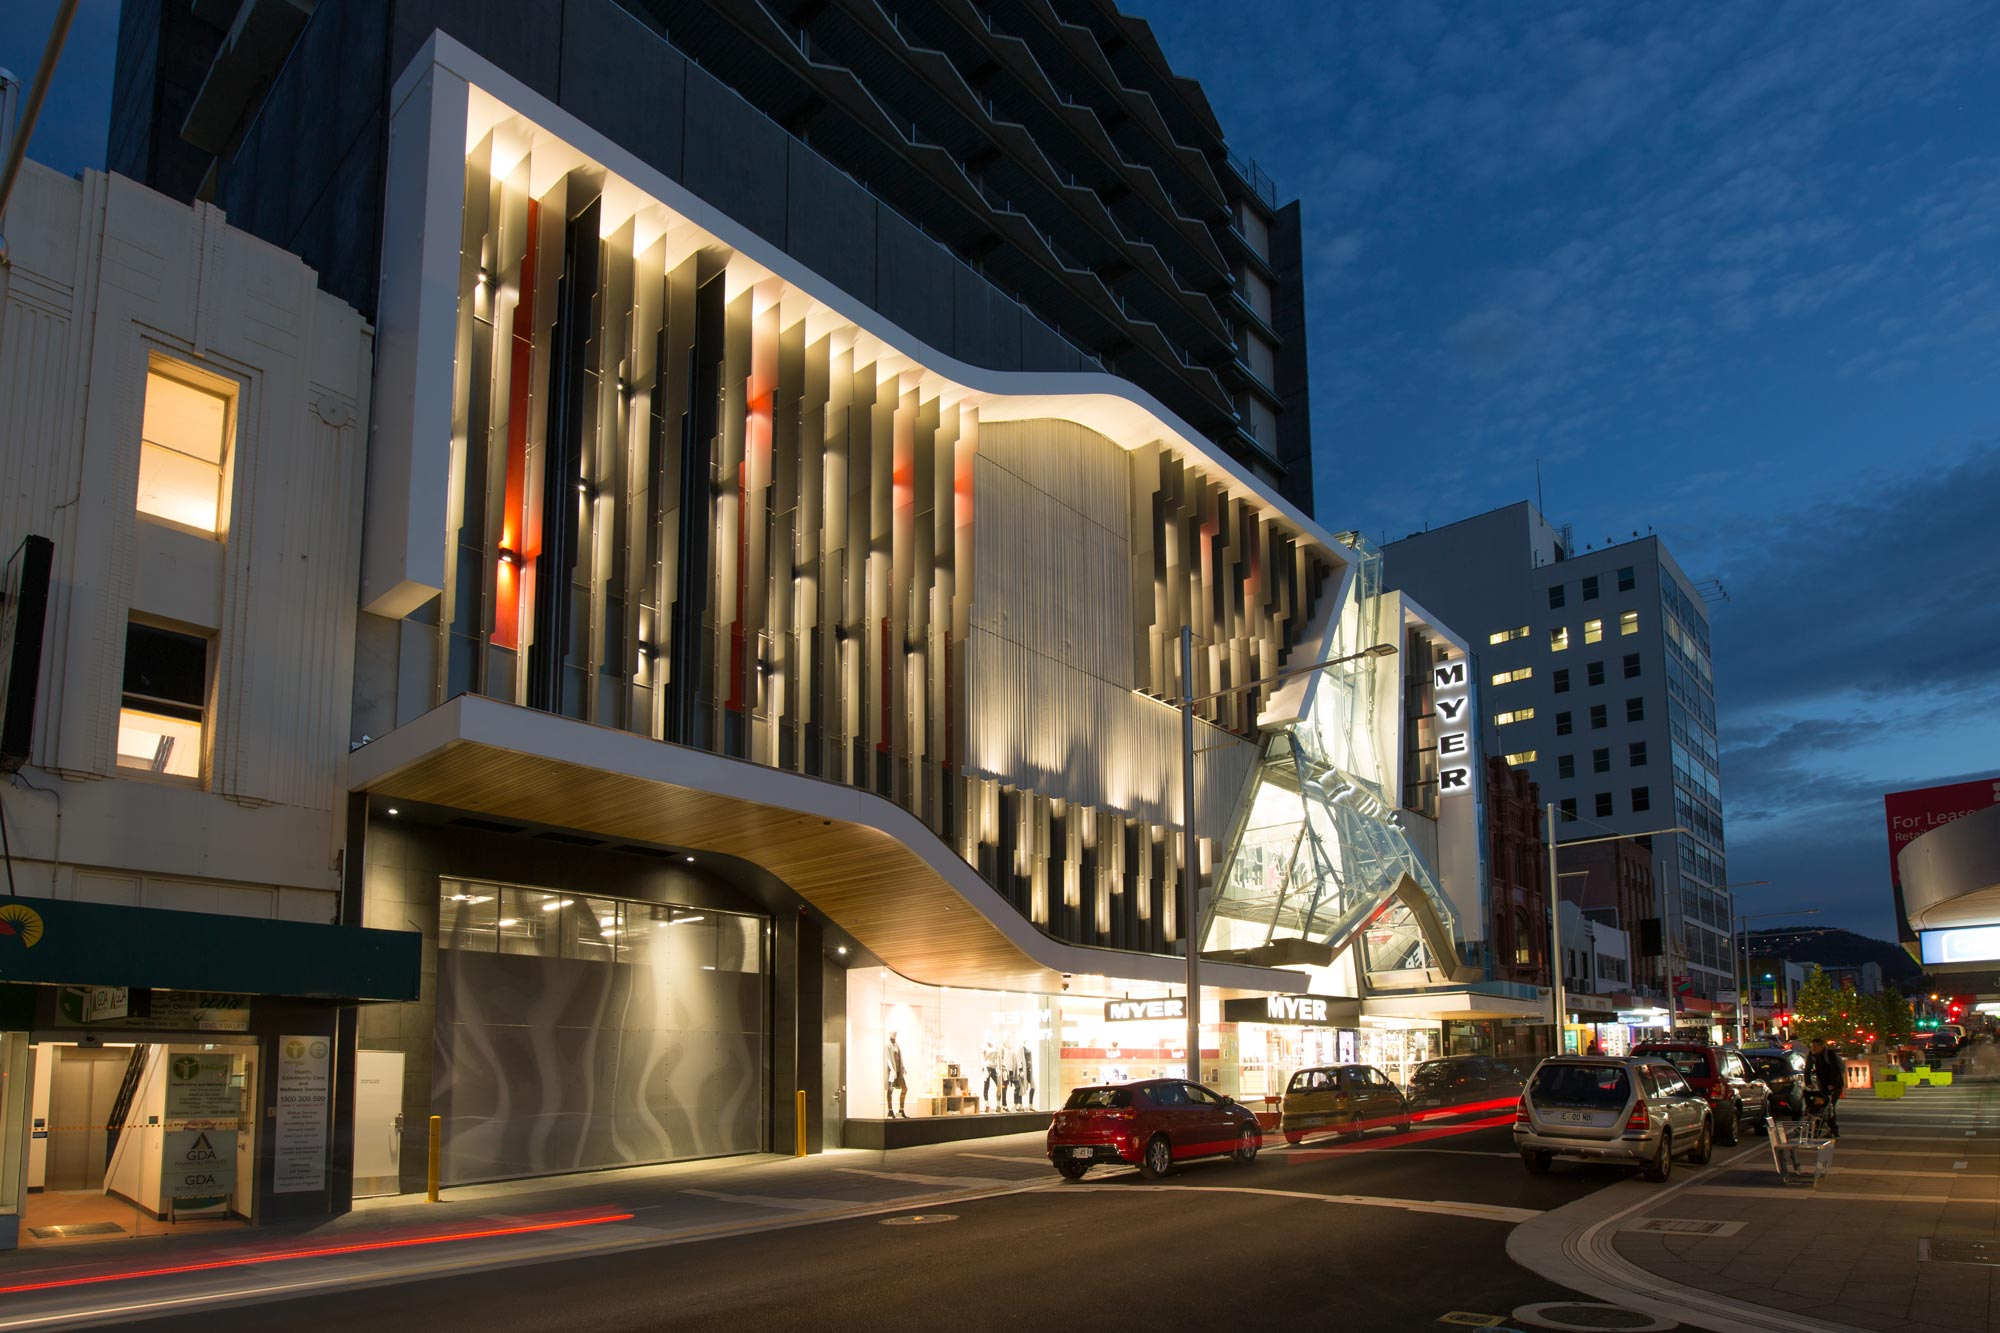 ICON/Myer Redevelopment